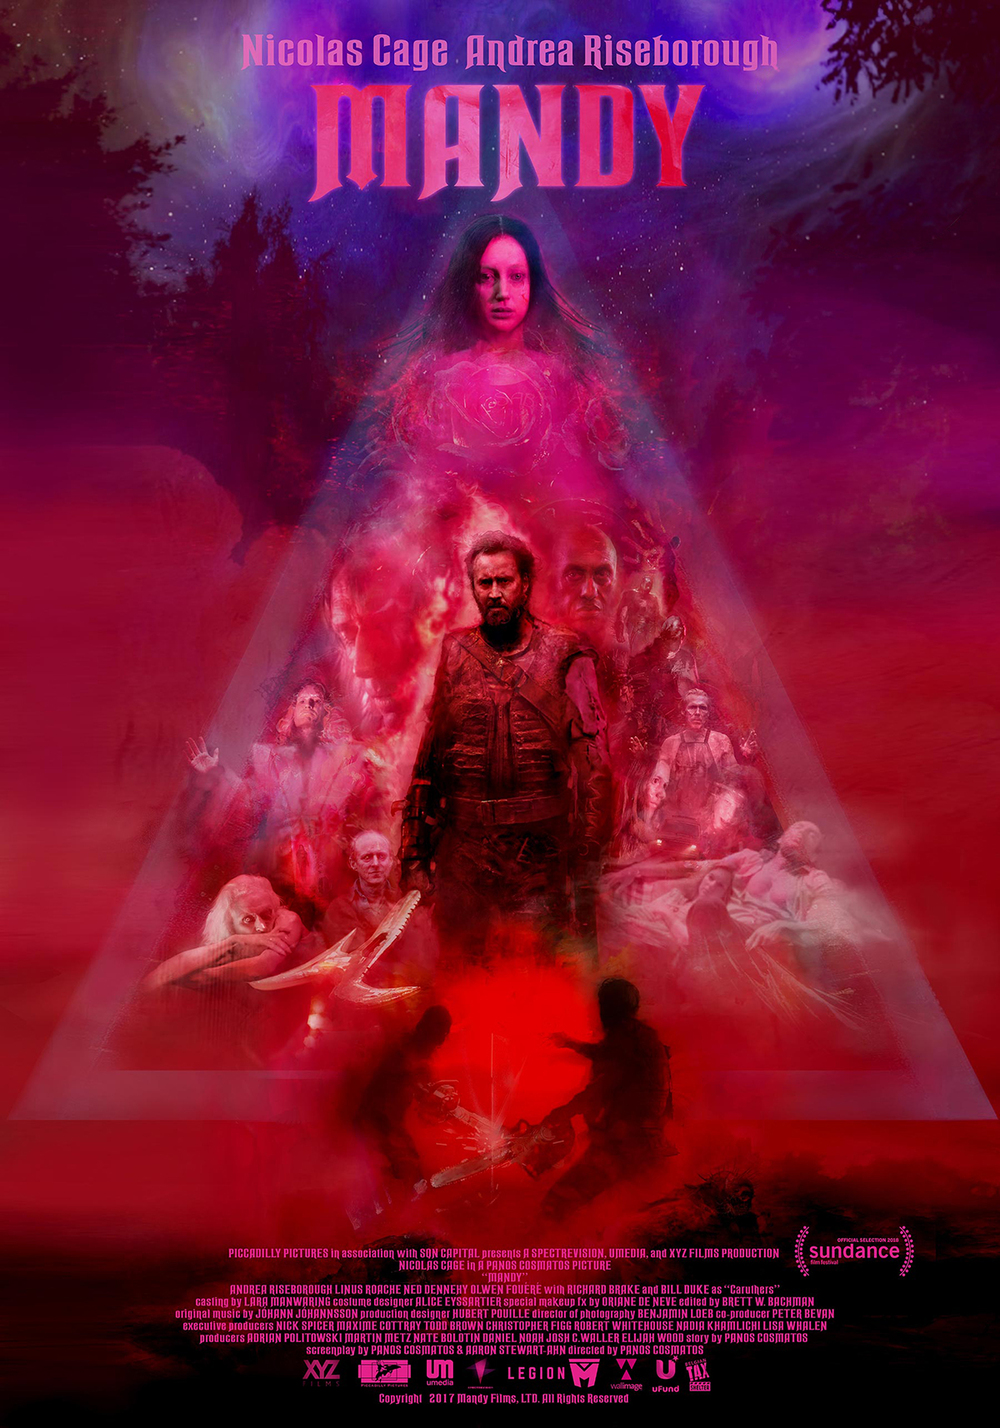 Arte Die Große Fifa Story Mandy 2018 Psychedelic Art House Elements Meet A Sinister Tale